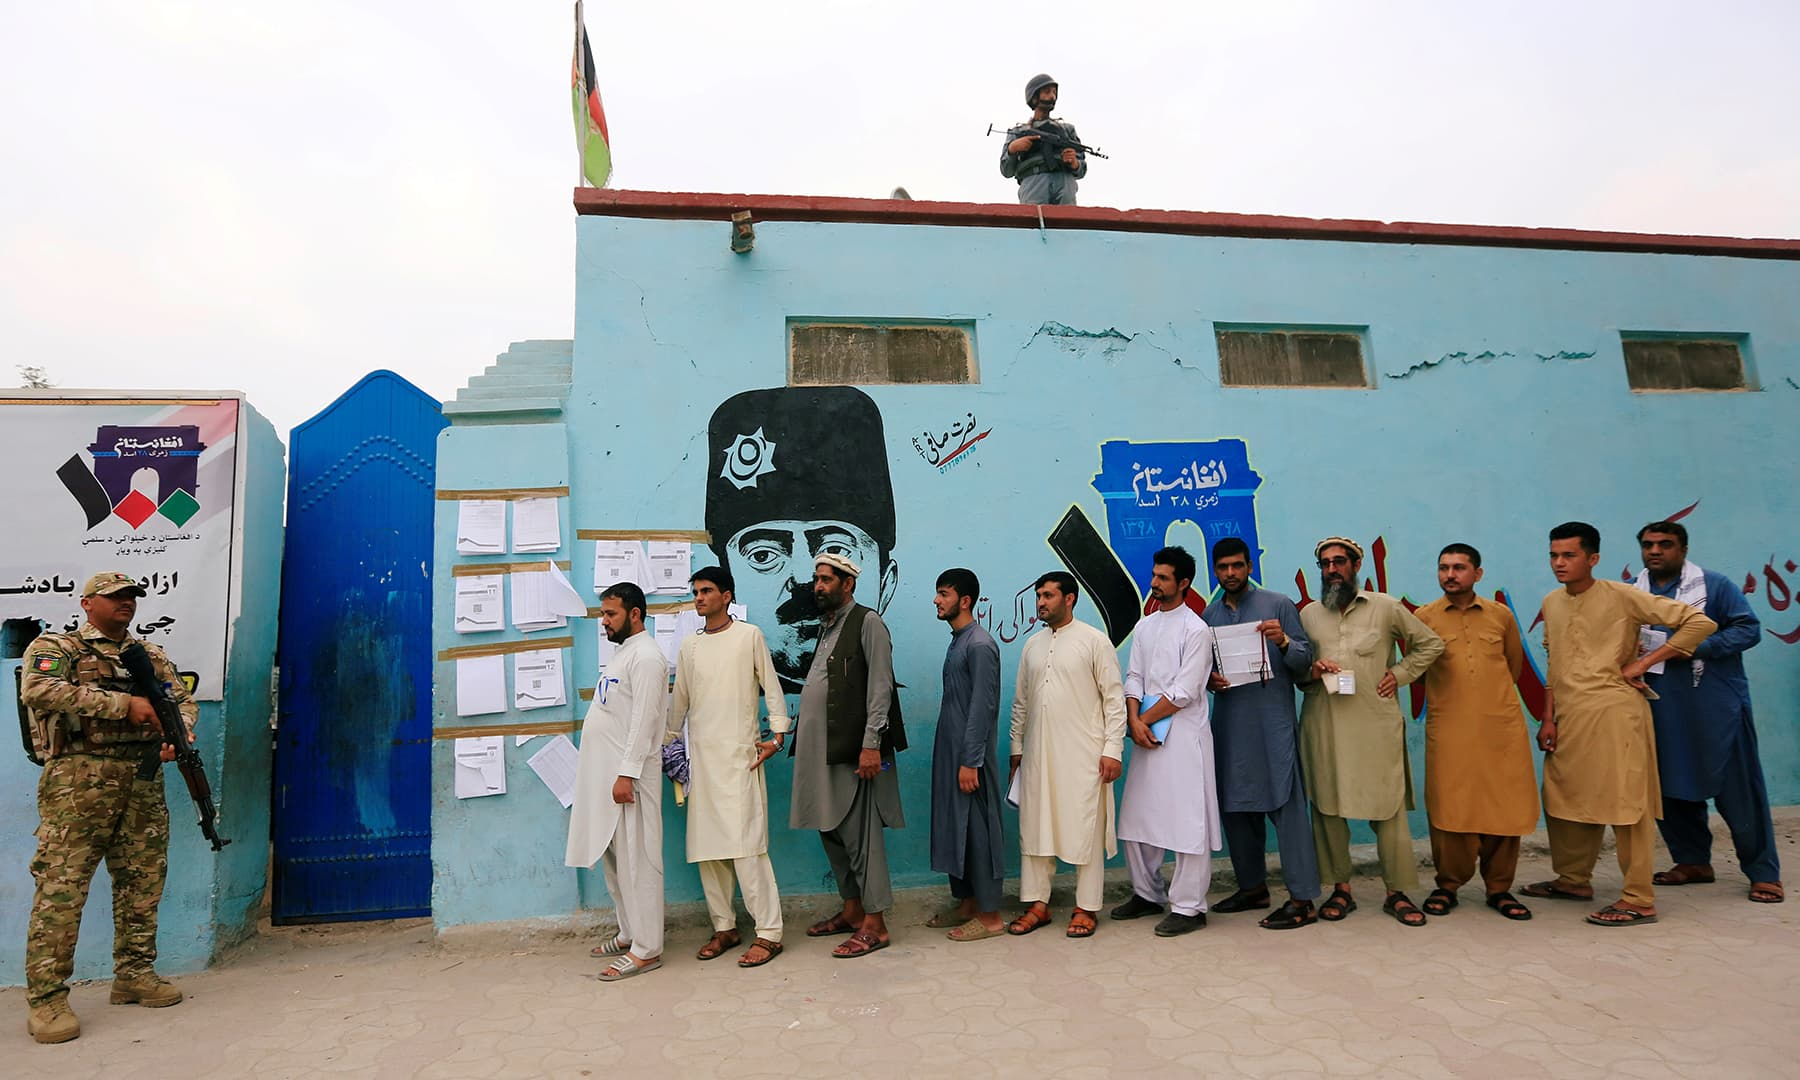 Men arrive to cast their votes outside a polling station in the presidential election in Jalalabad. — Reuters